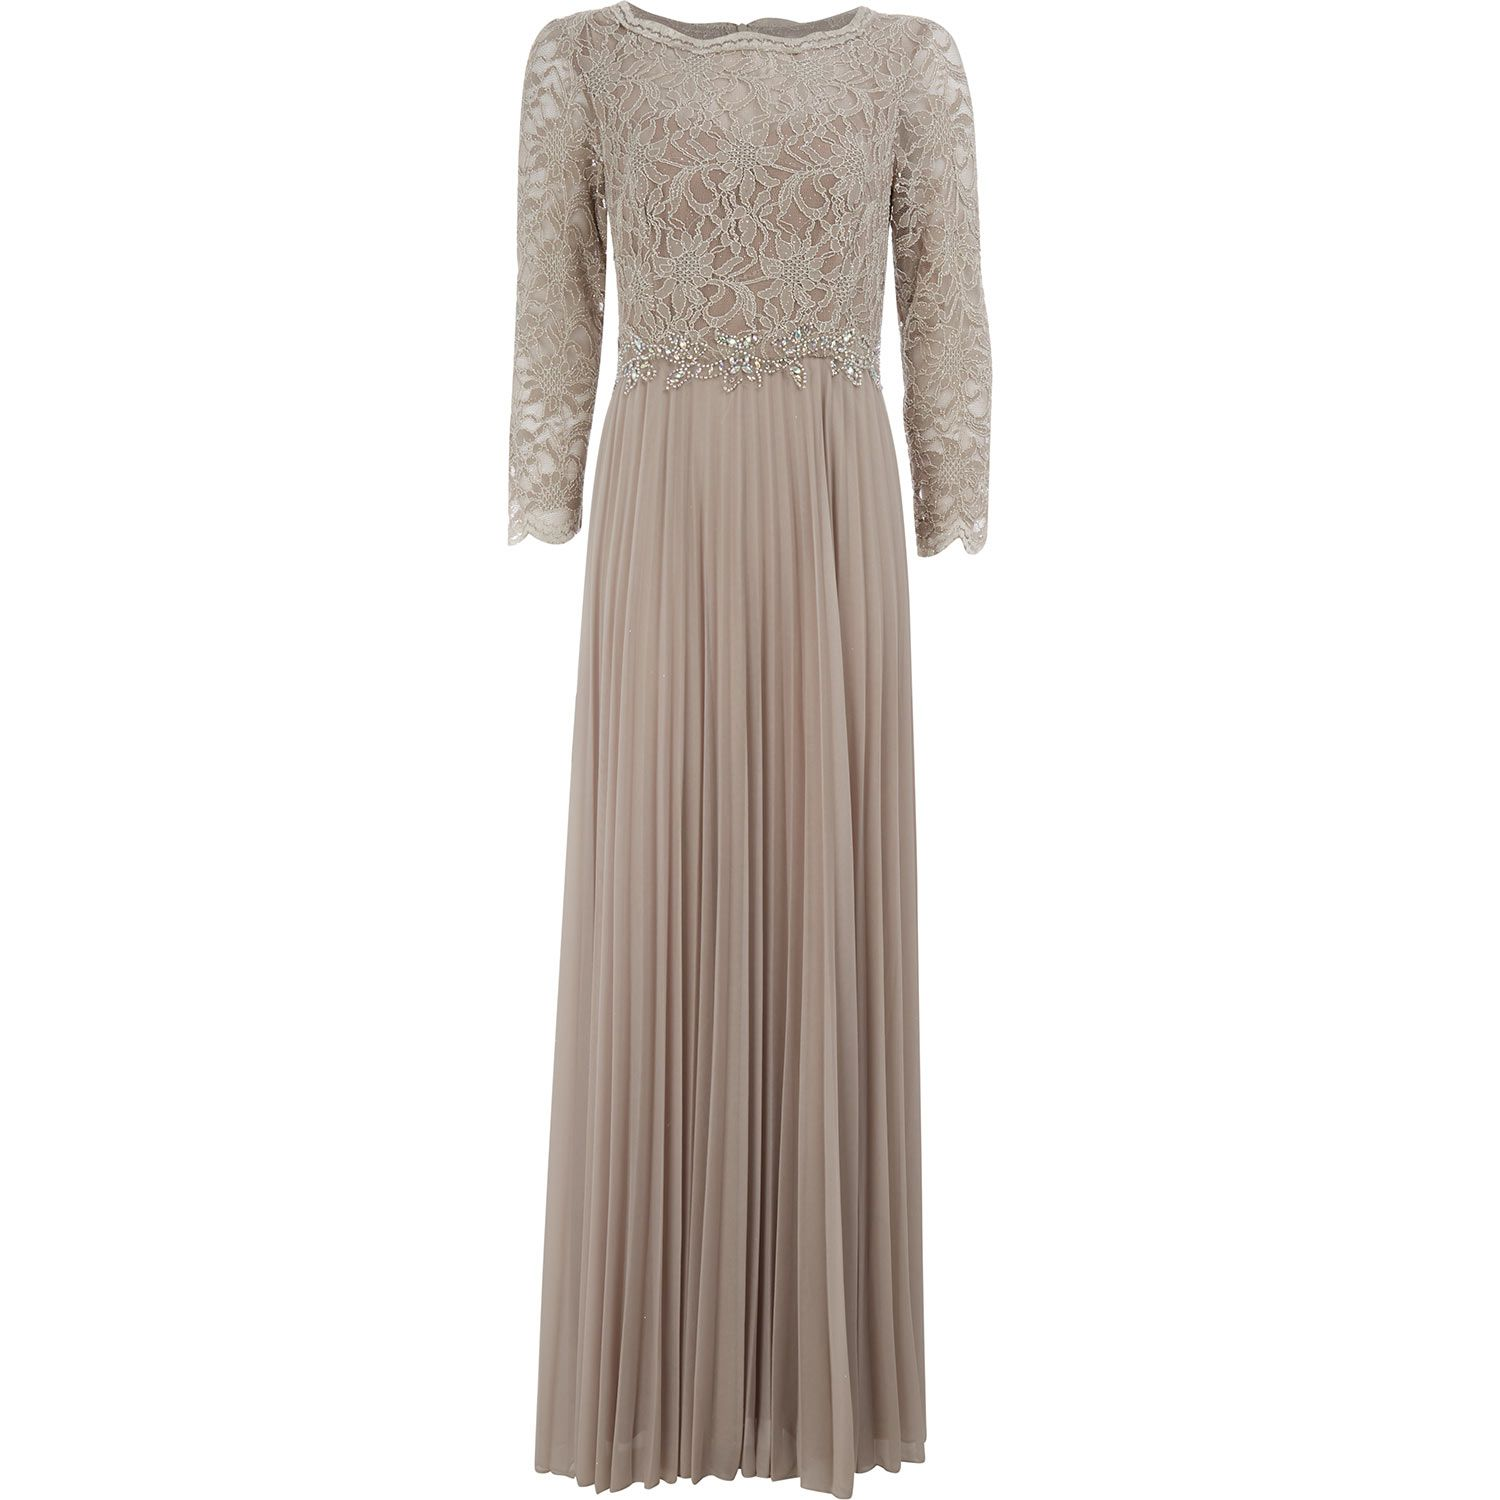 Cachet Taupe Lace Occasion Dress